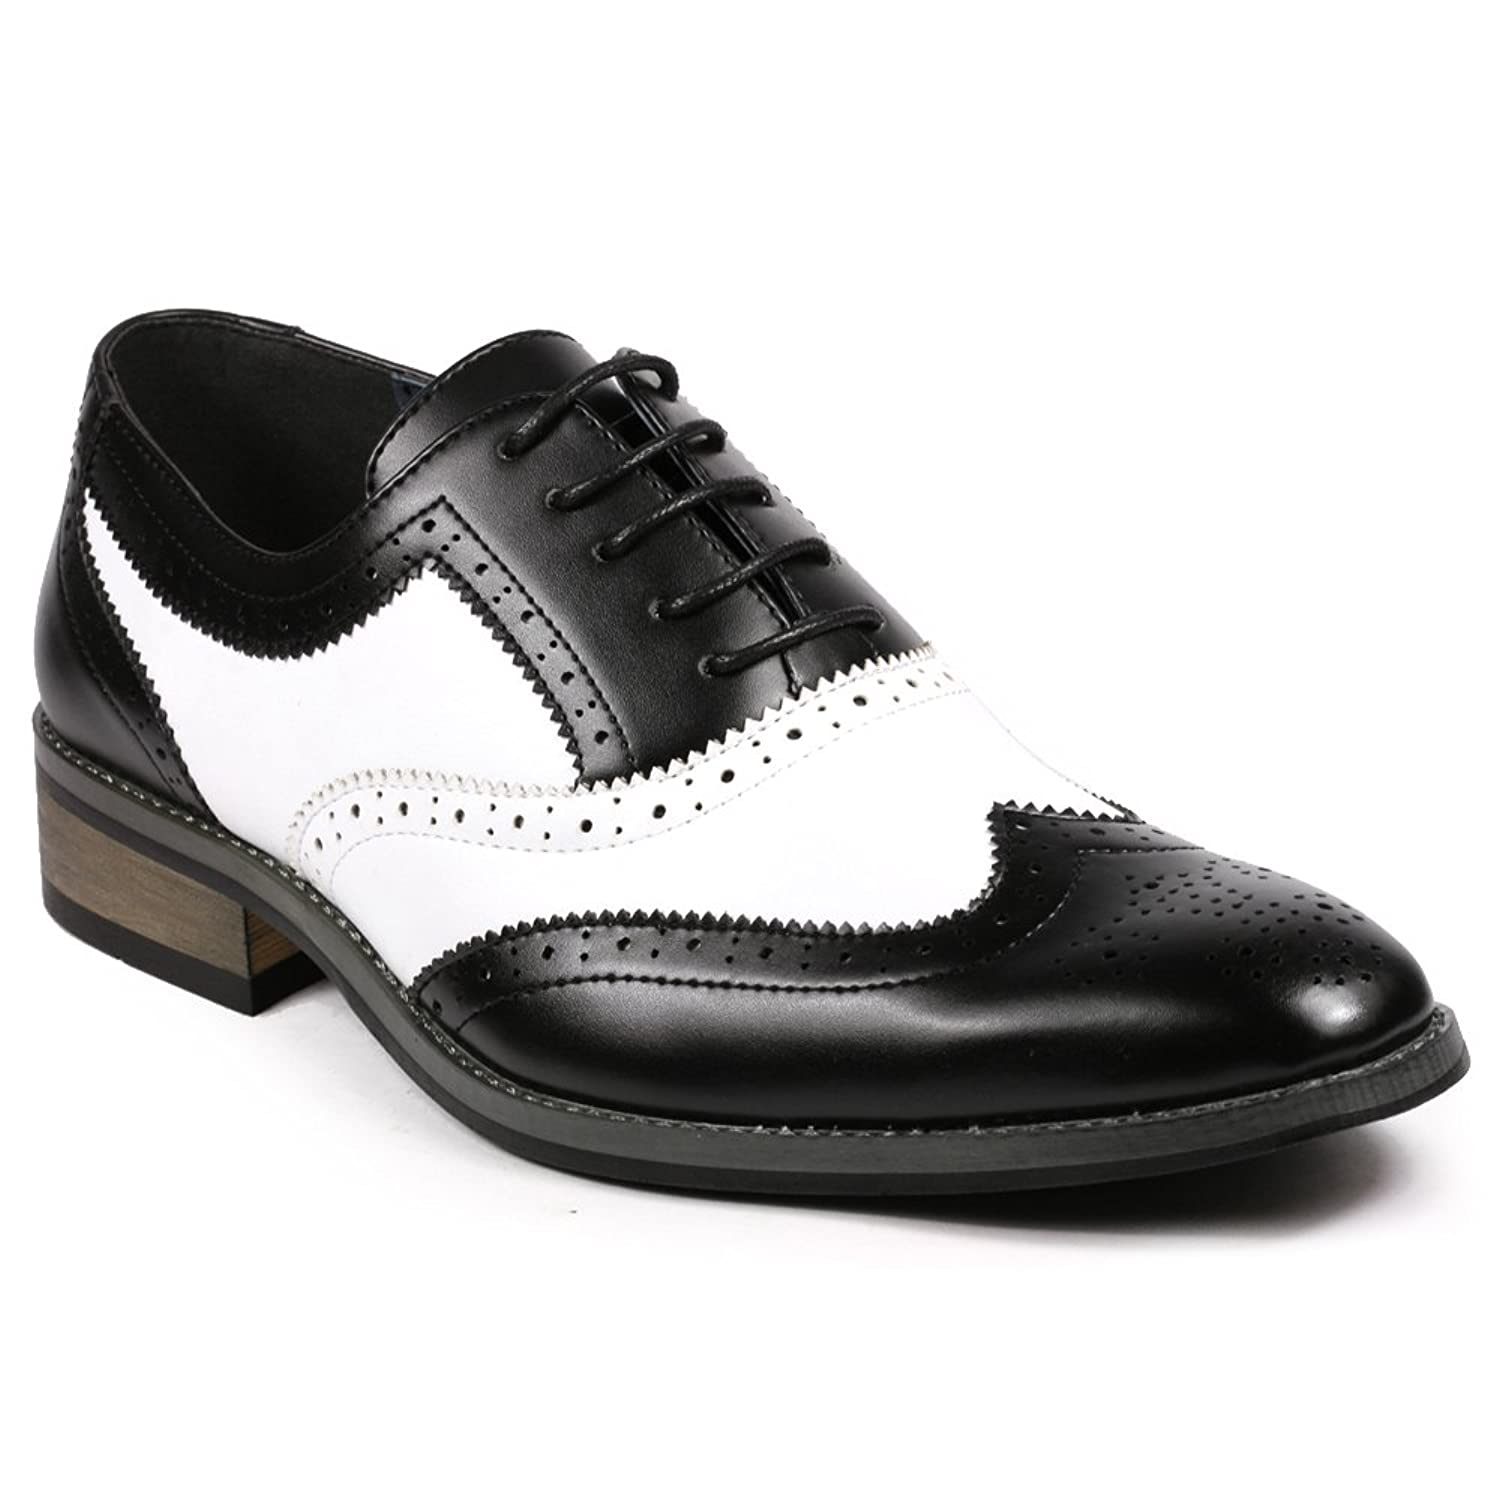 1940s Men's Fashion Clothing Styles UV Signature PA002 Mens Two Tone Perforated Wing Tip Lace Up Oxford Dress Shoes $44.99 AT vintagedancer.com